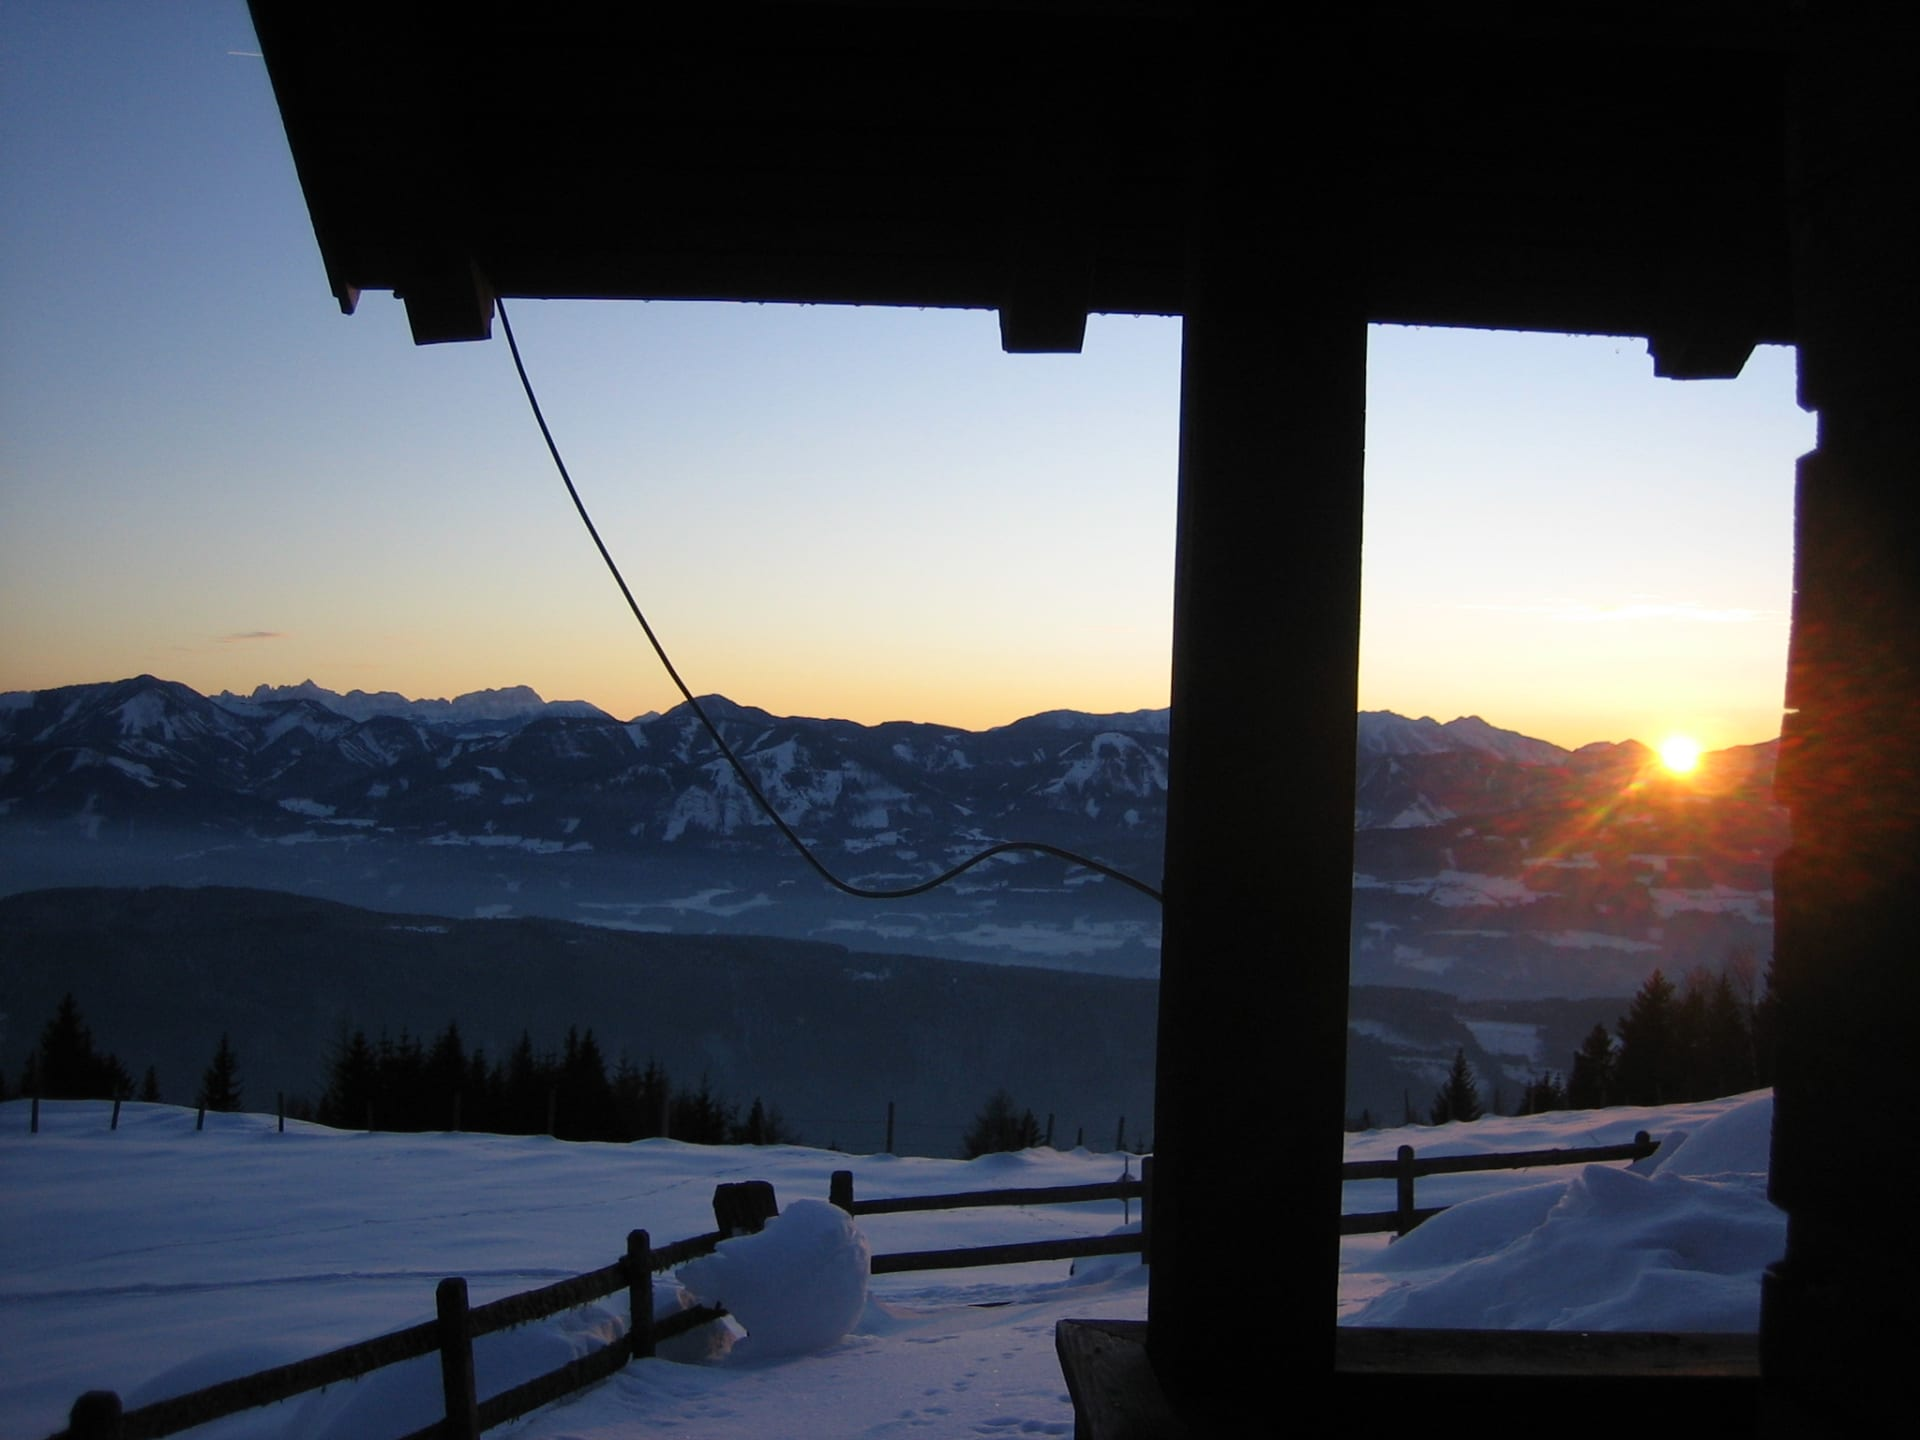 Winter evening atmosphere from our alpine cabin